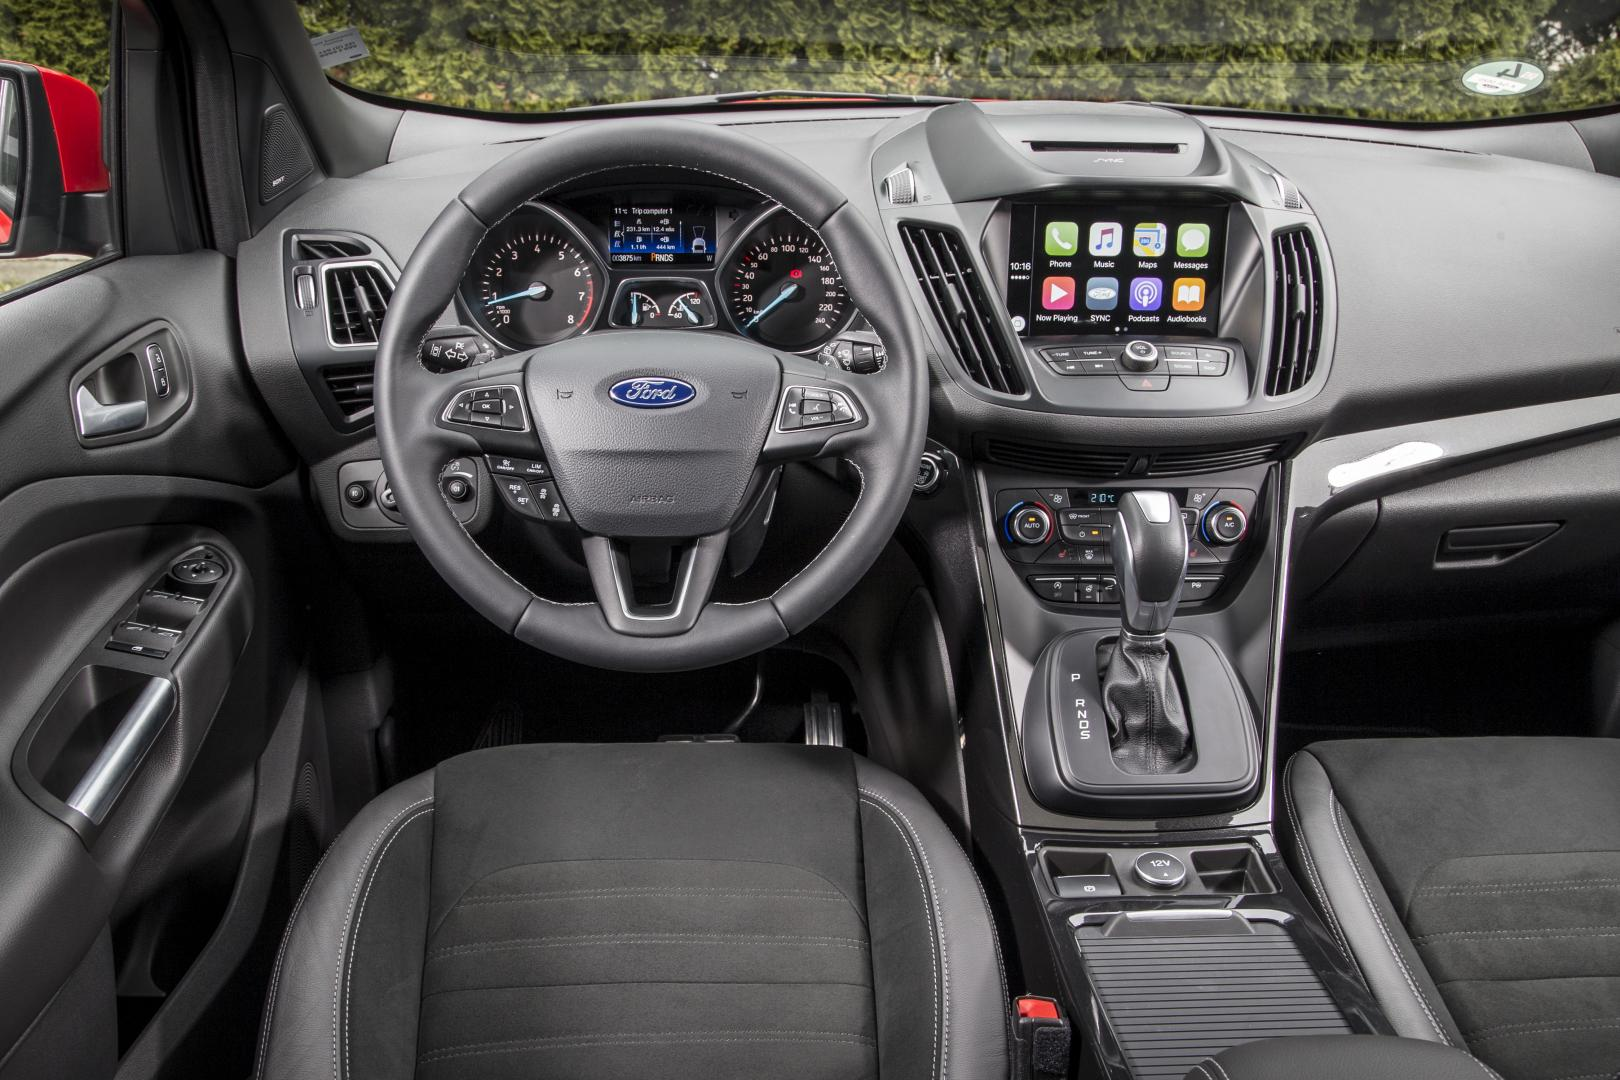 ford kuga ecoboost 1 5 test en specificaties topgear nederland. Black Bedroom Furniture Sets. Home Design Ideas